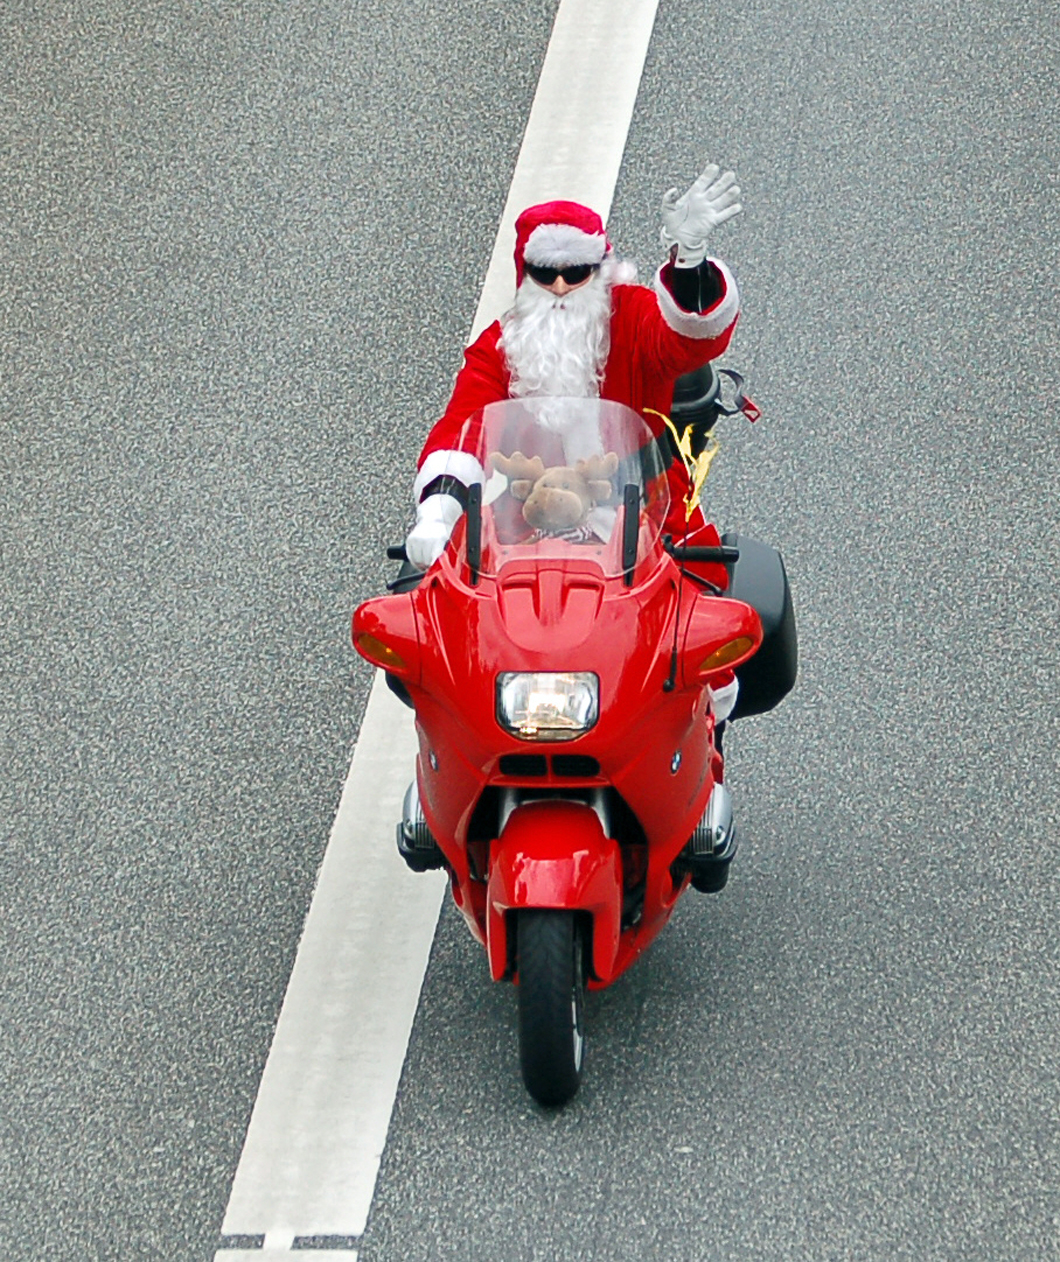 Santa Claus on a Motorcycle!